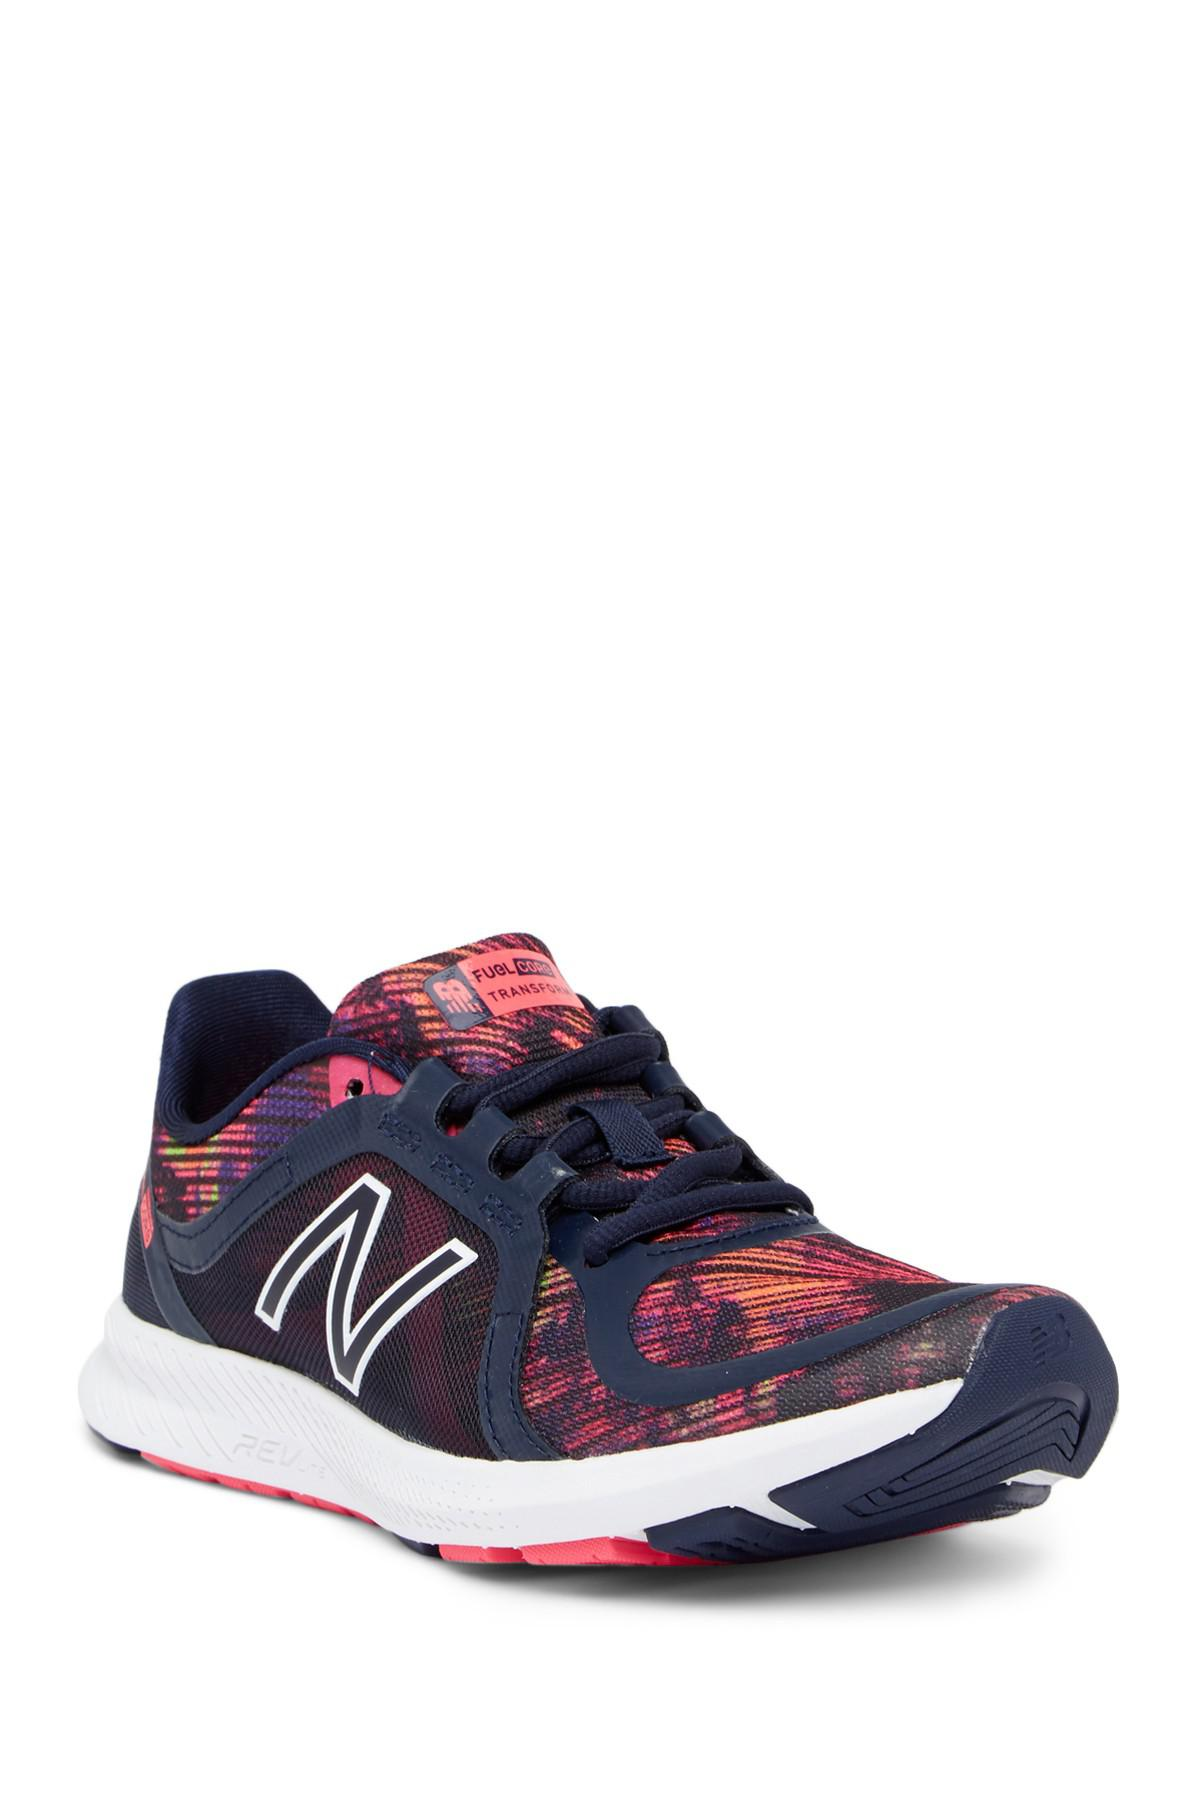 Wx77v2 Training Sneaker in Navy/Pink